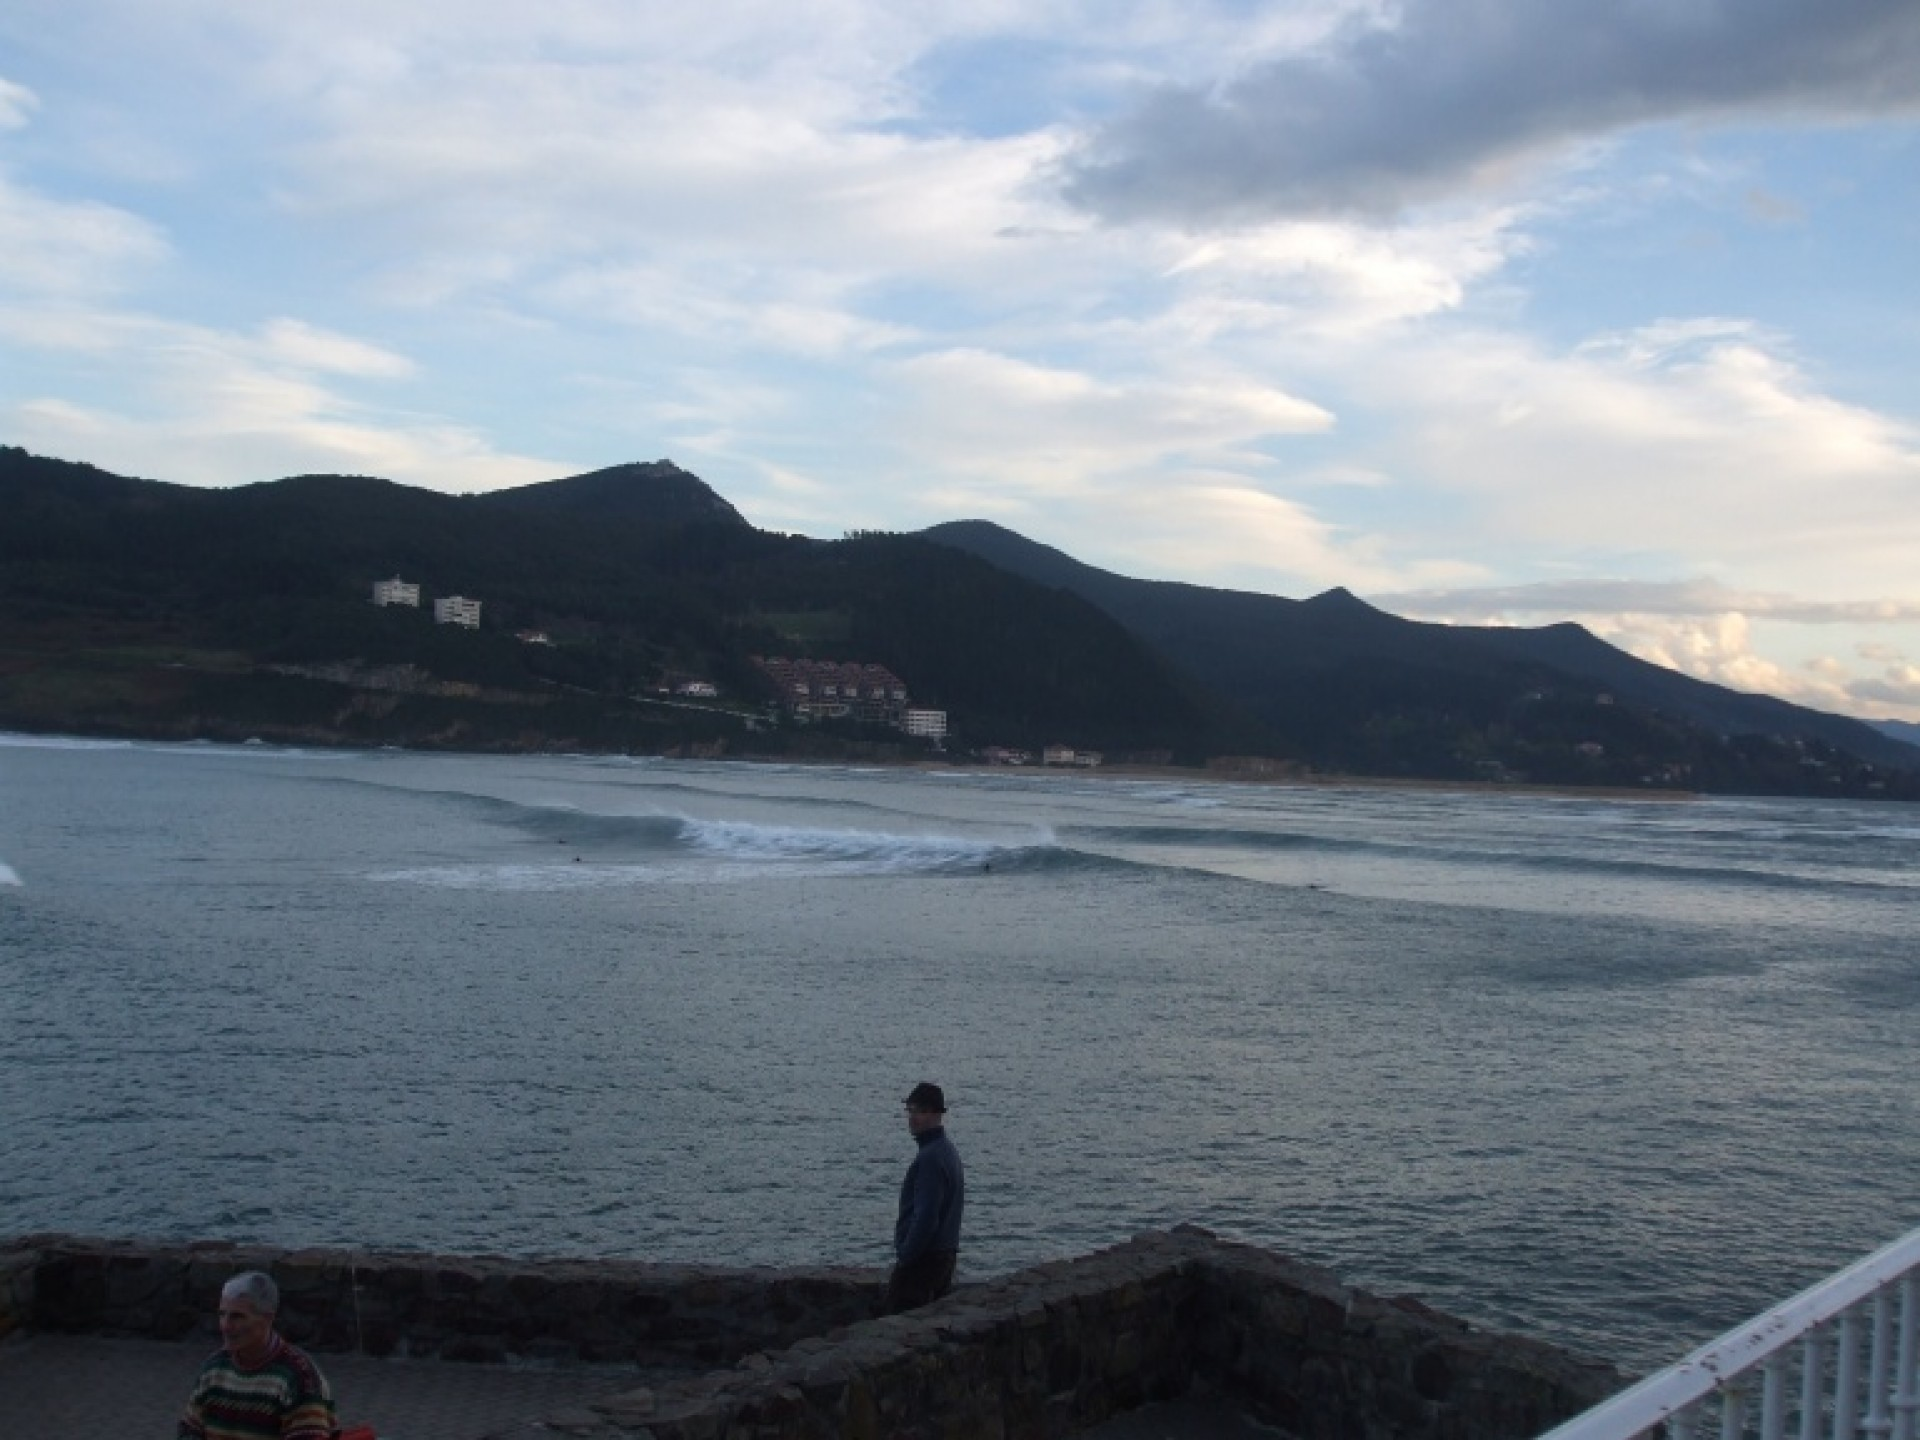 Surfholidays.com's photo of Mundaka